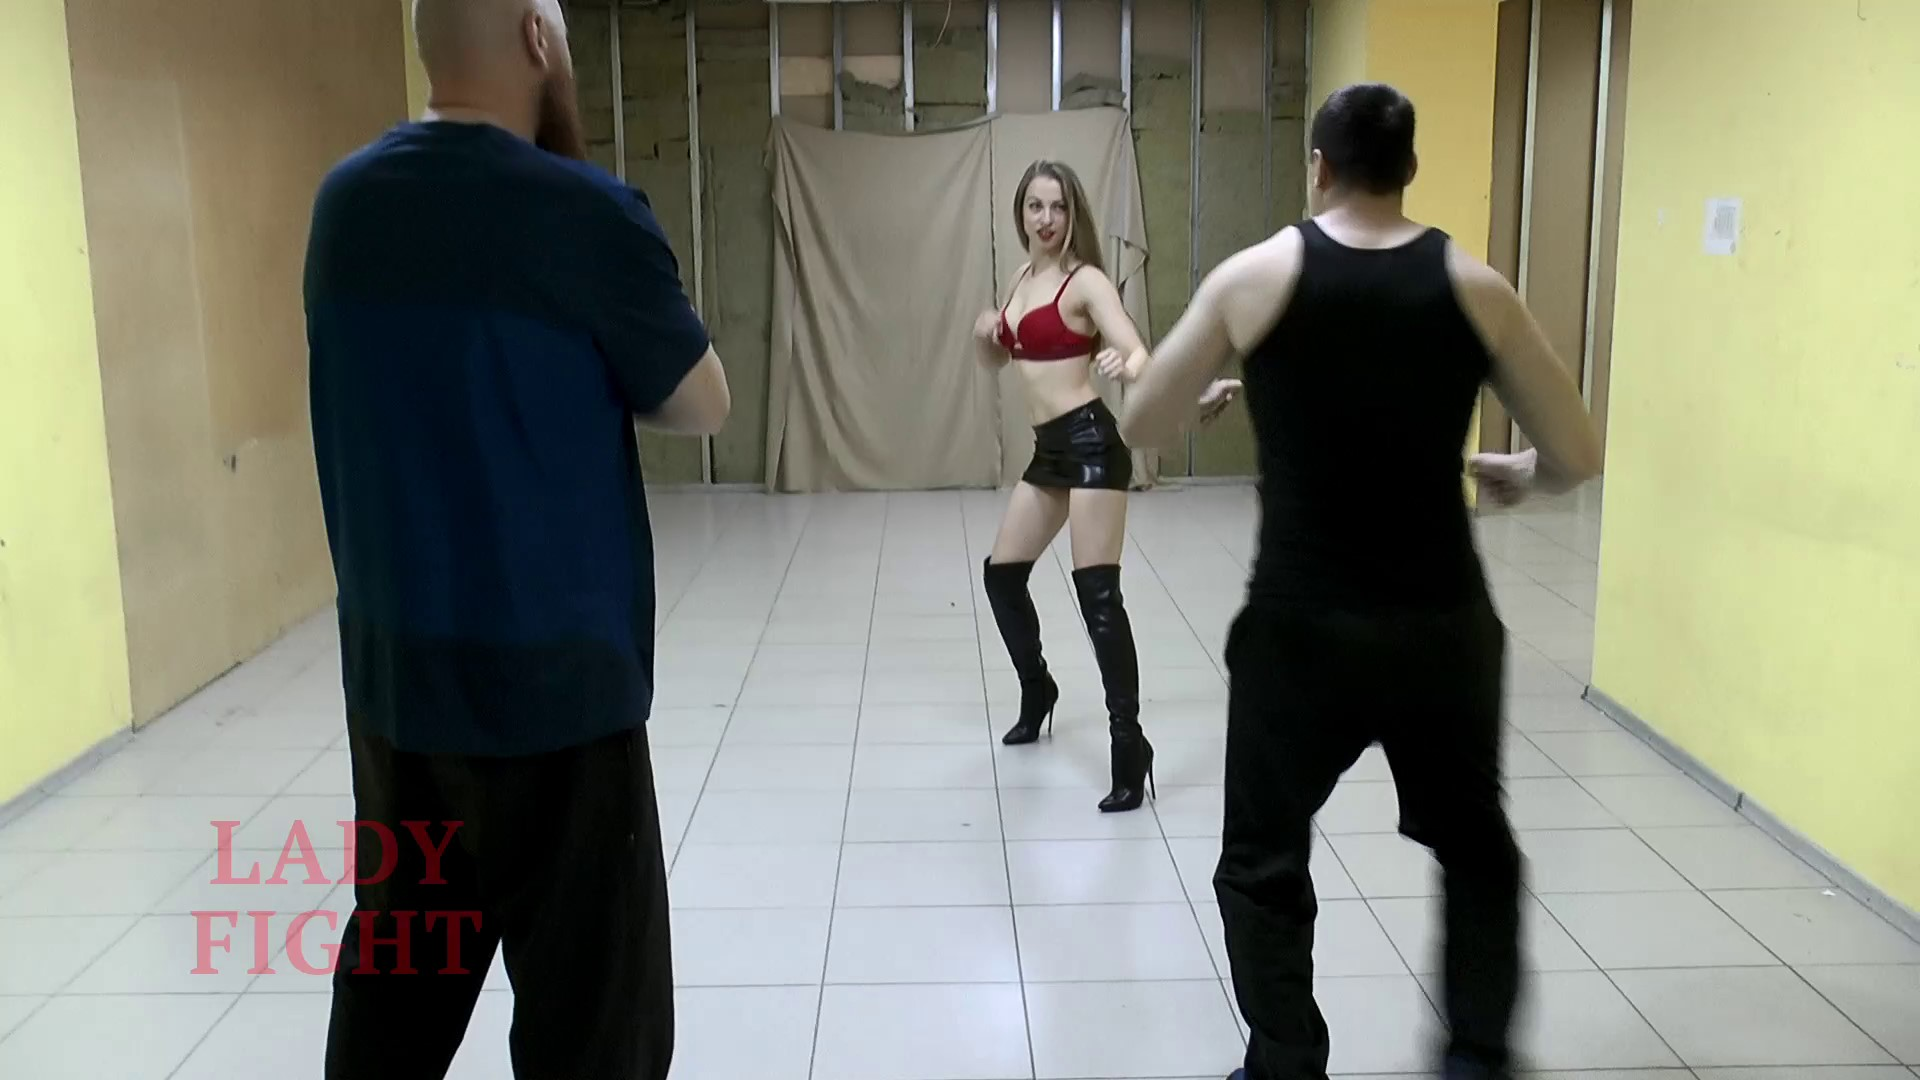 LADYFIGHT-Deadly-Wrestling-For-Lora-8